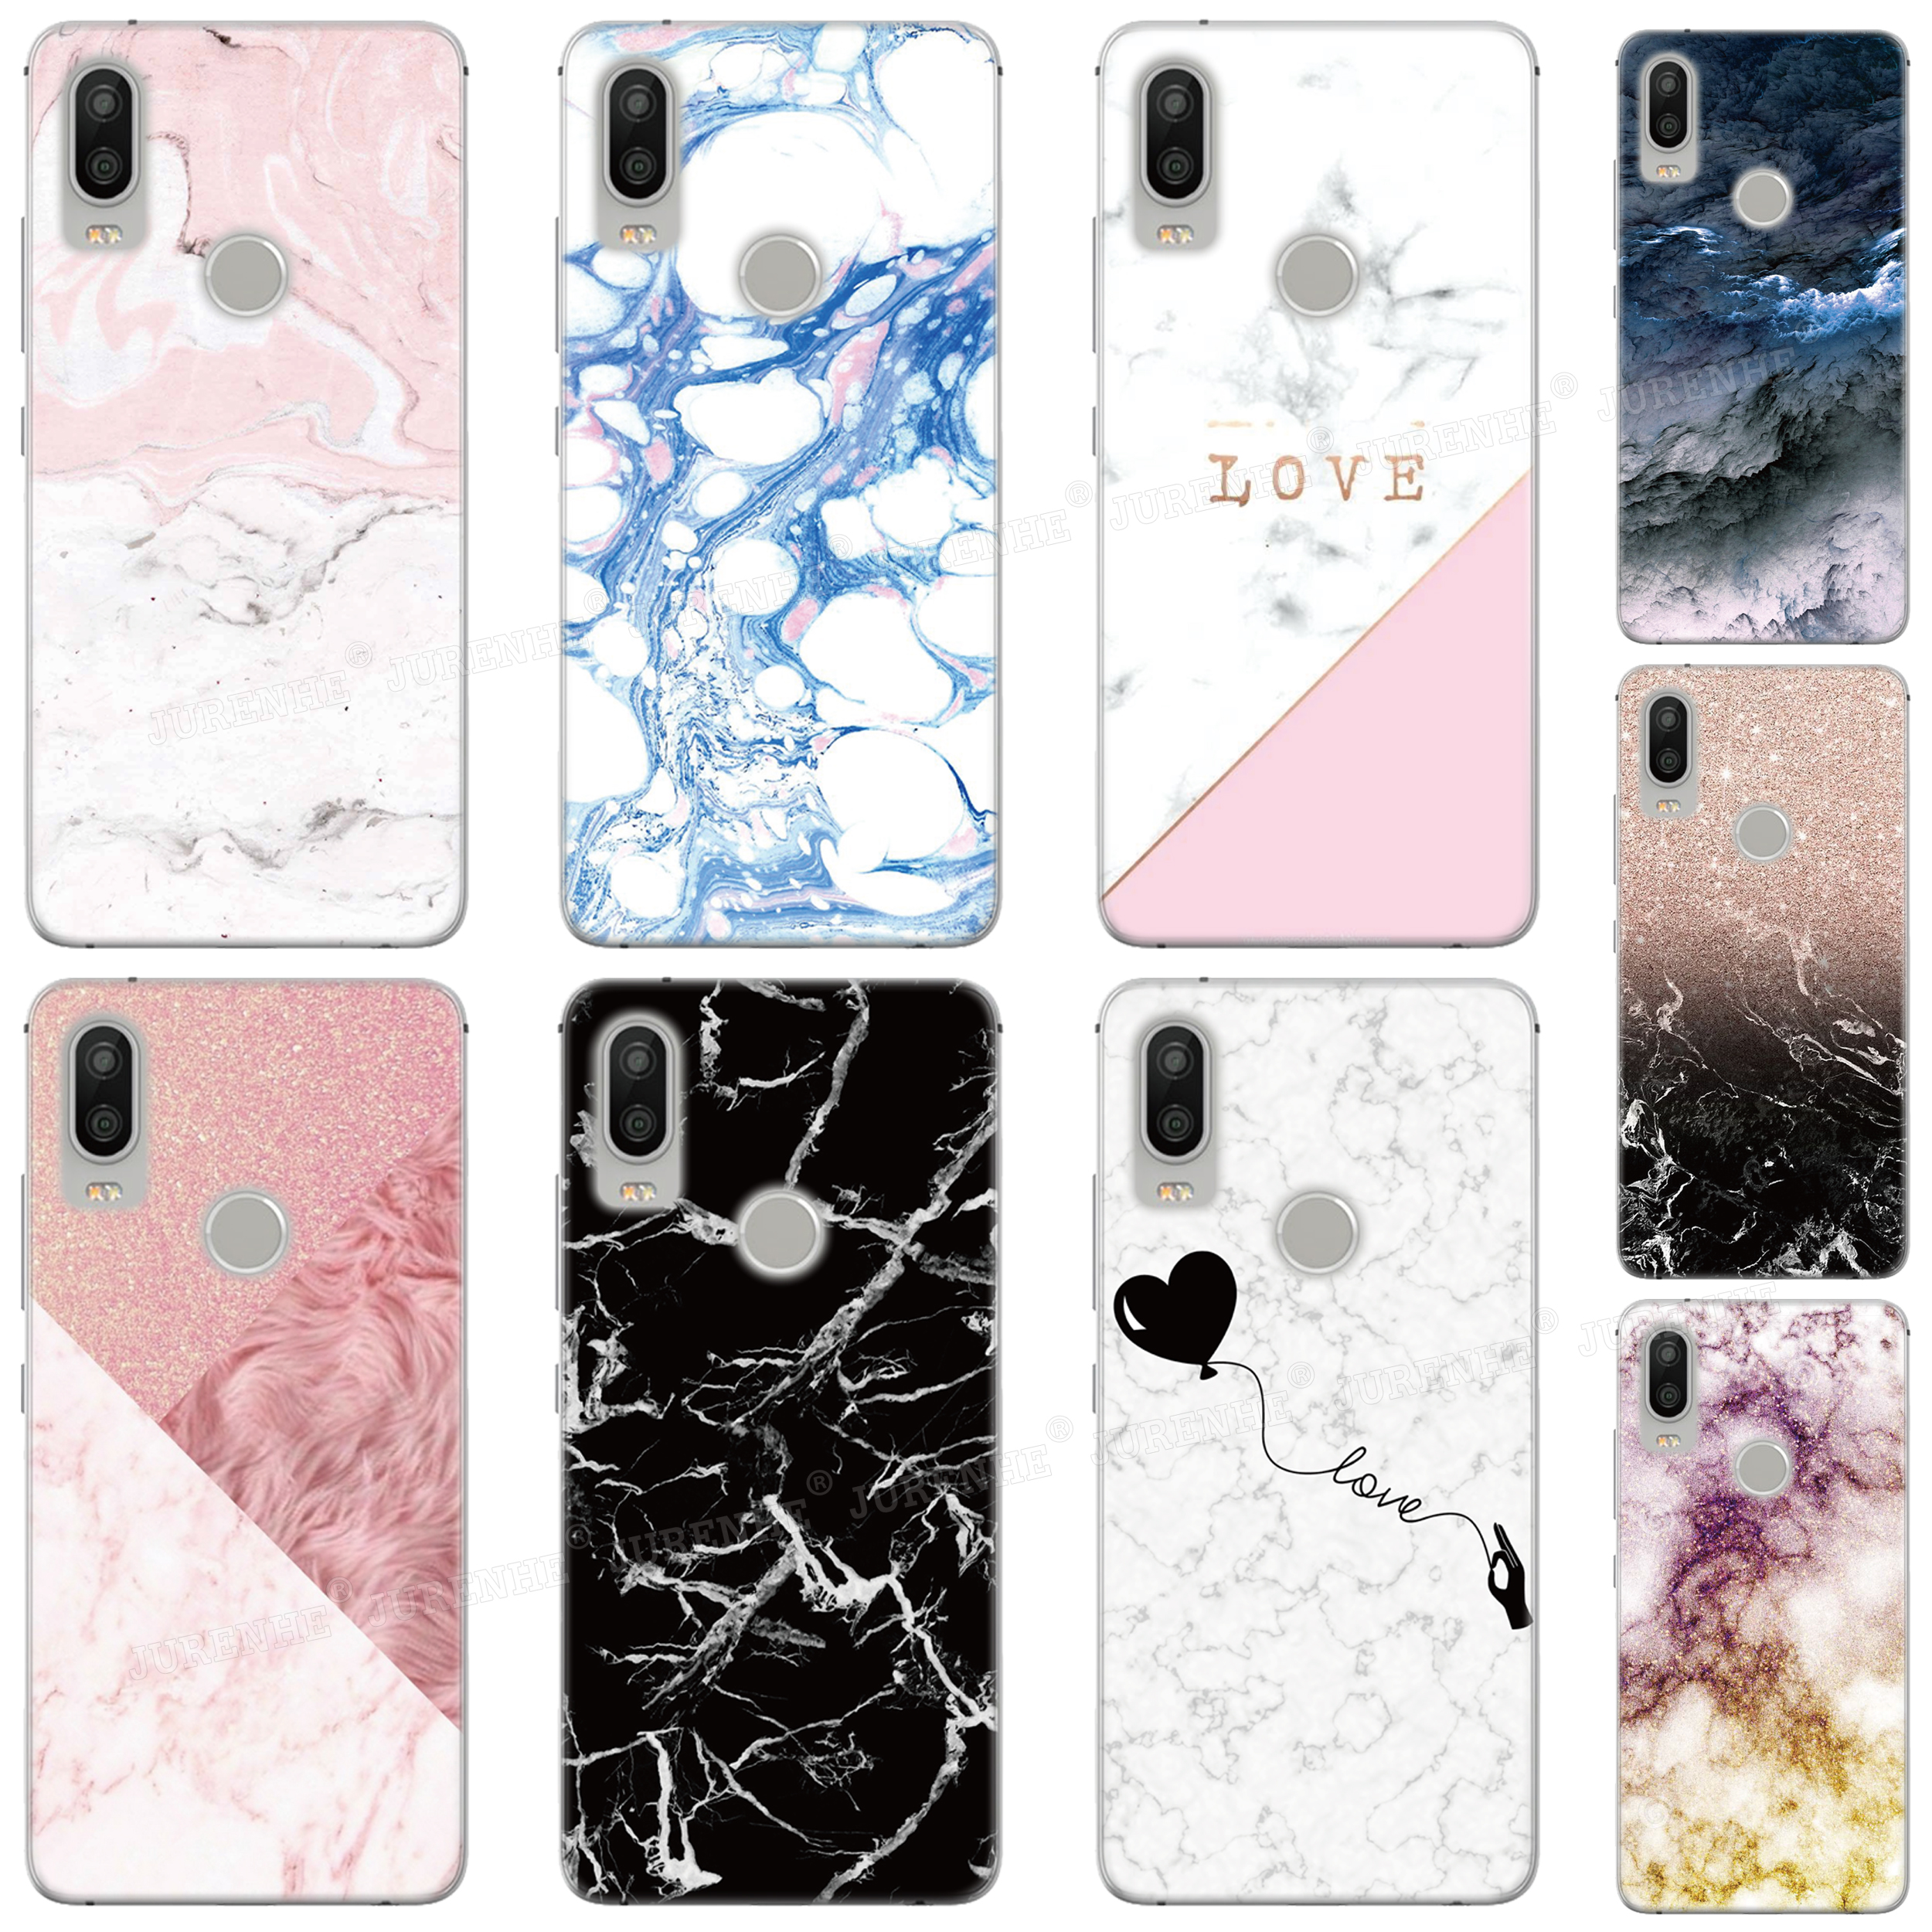 Rubber Soft TPU Funda Colorful Marble Phone <font><b>Case</b></font> For <font><b>Ulefone</b></font> Note 7 / Note 7P Power 3S / Power 6 / S10 <font><b>S1</b></font> Pro S7 Silicone Cover image